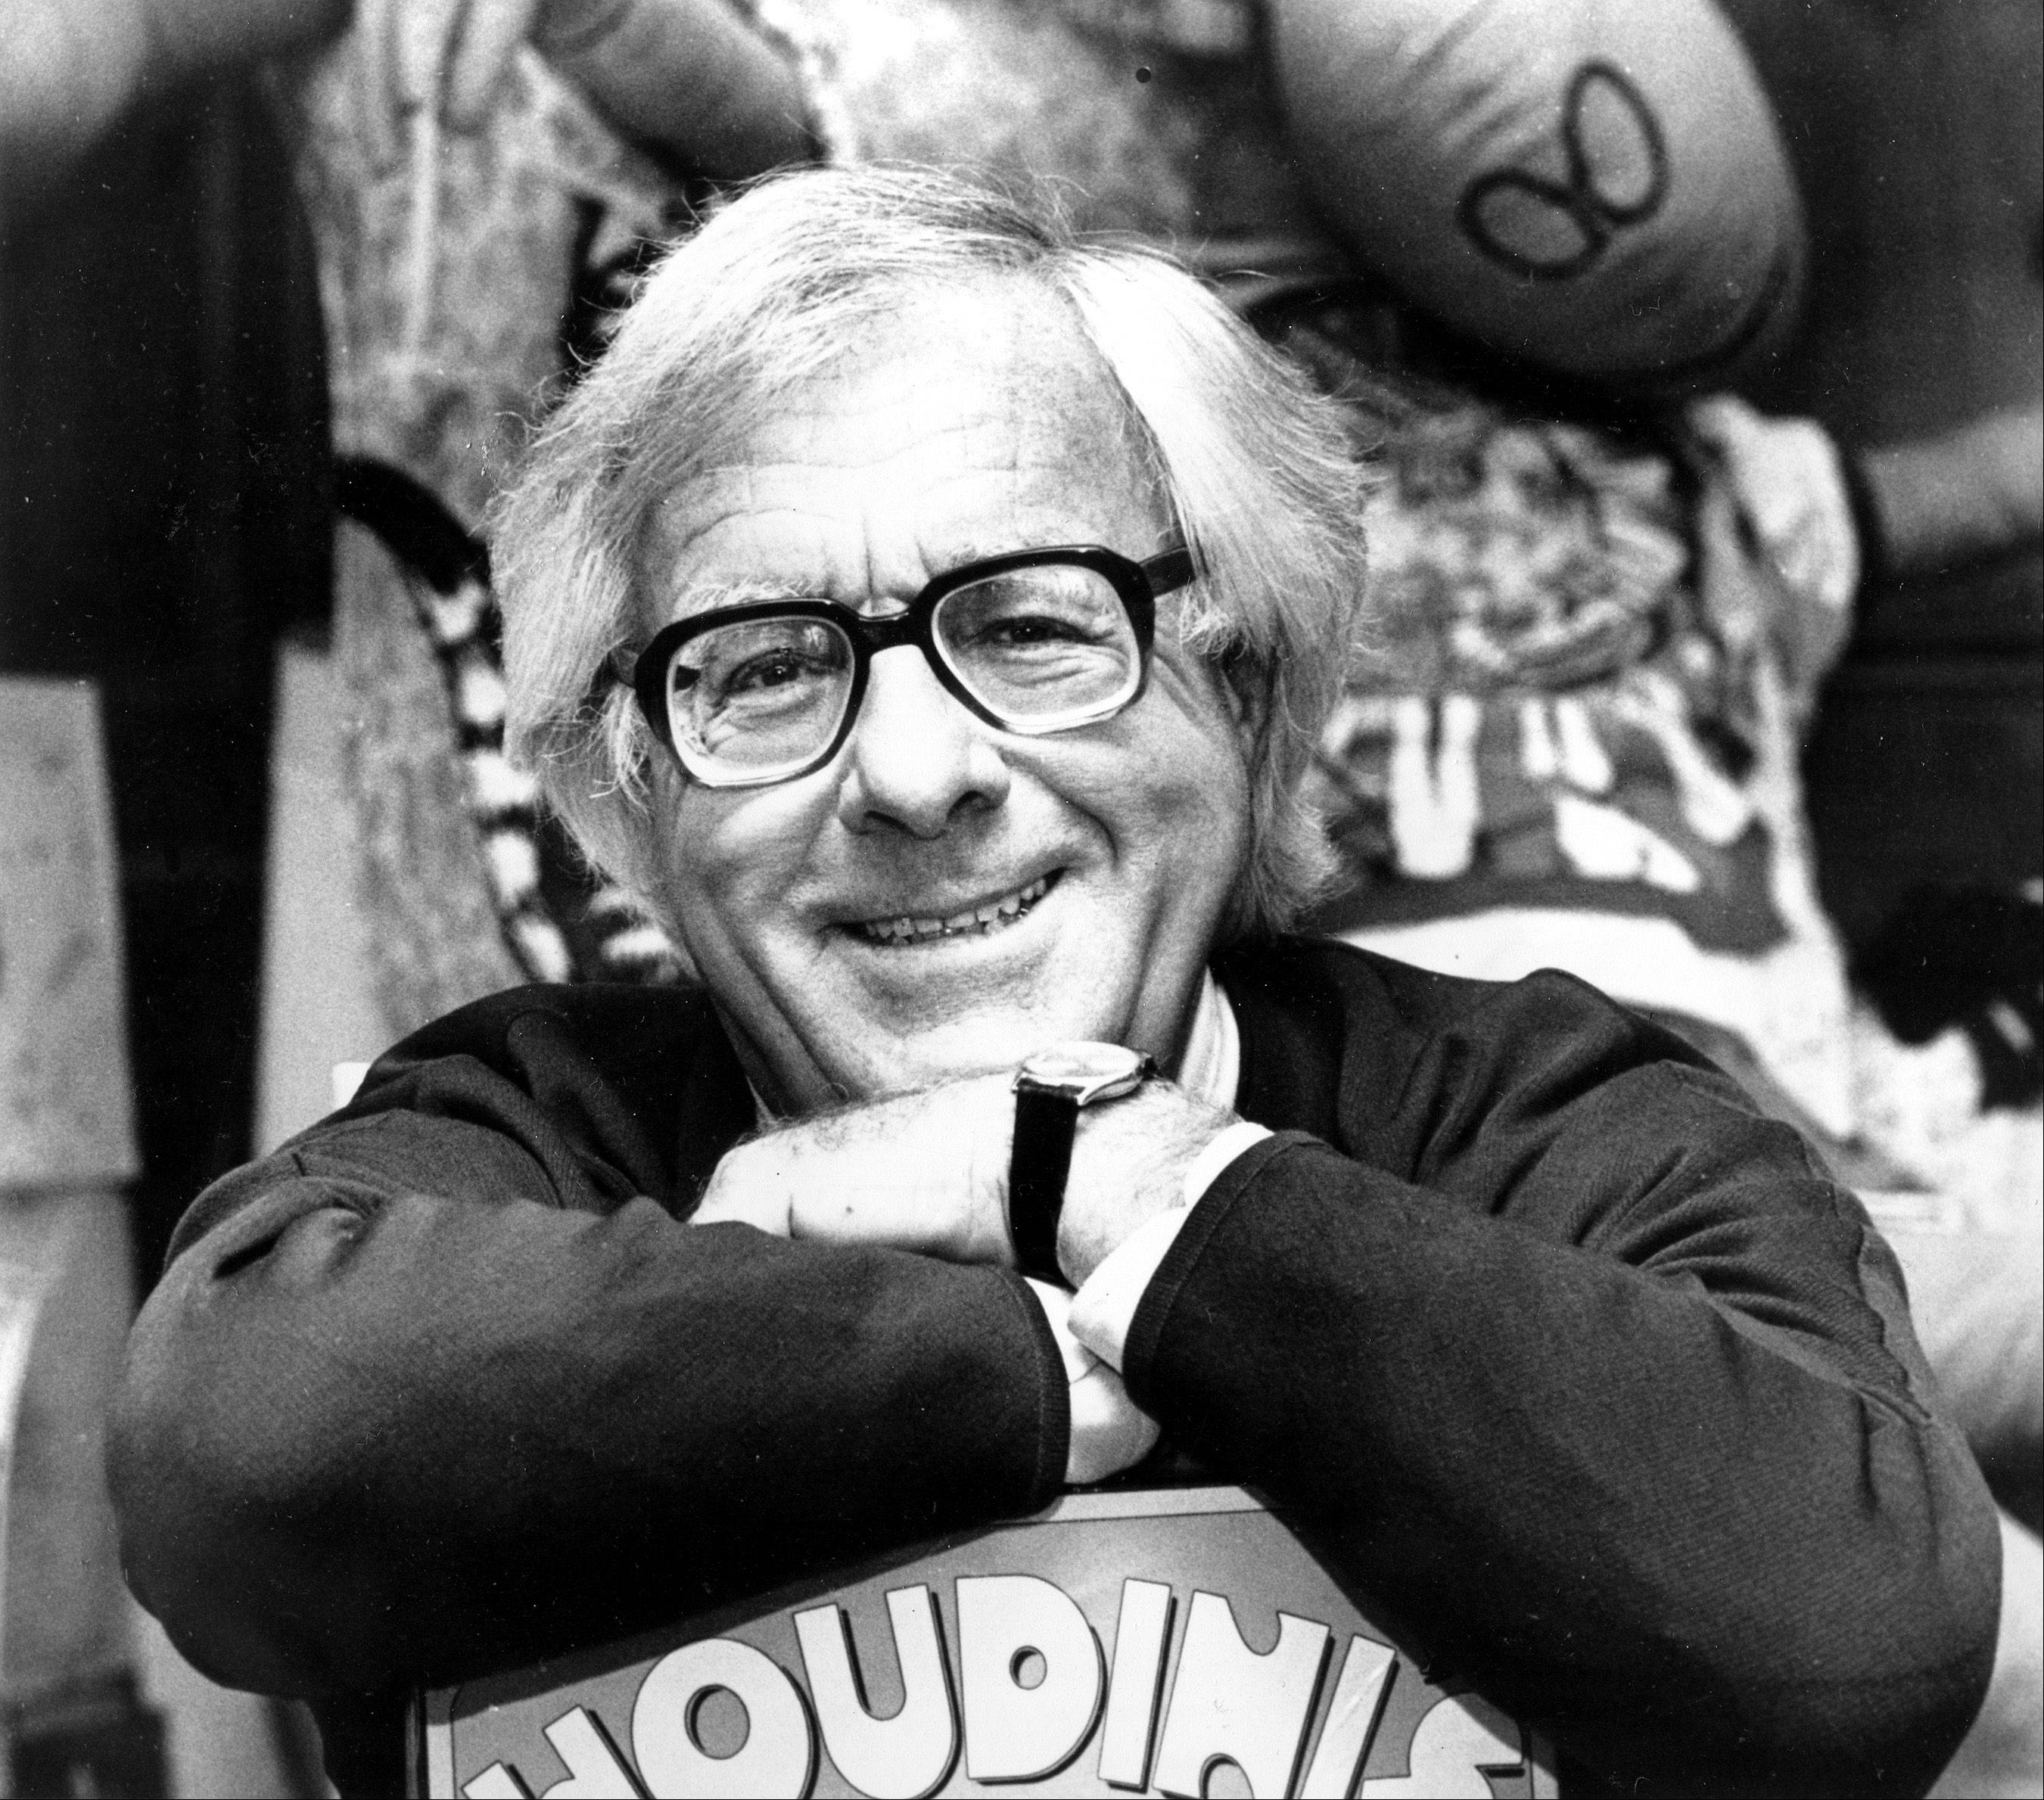 Images: Science-fiction writer Ray Bradbury (1920-2012)